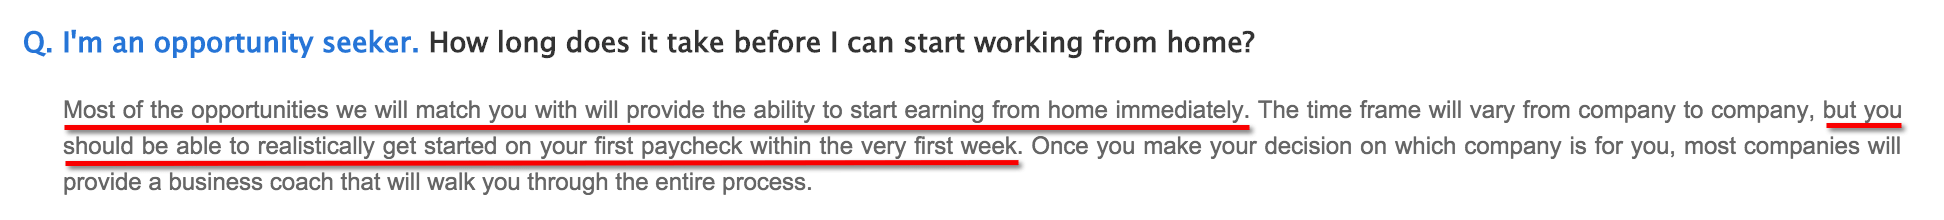 paycheck-in-the-first-week